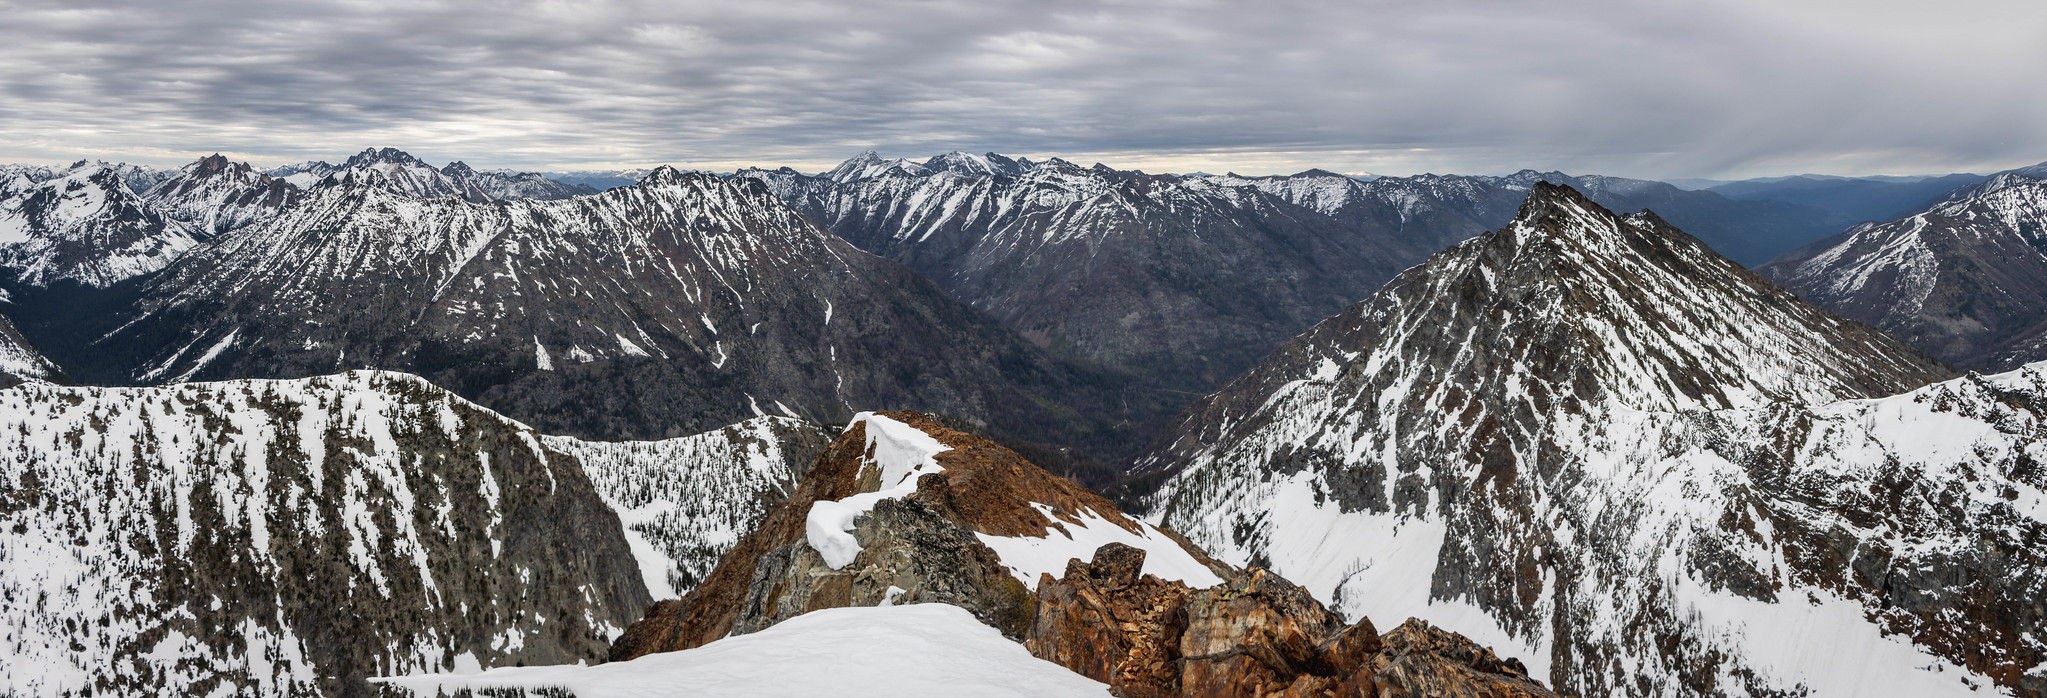 Northern panoramic view from Mother Lode Peak